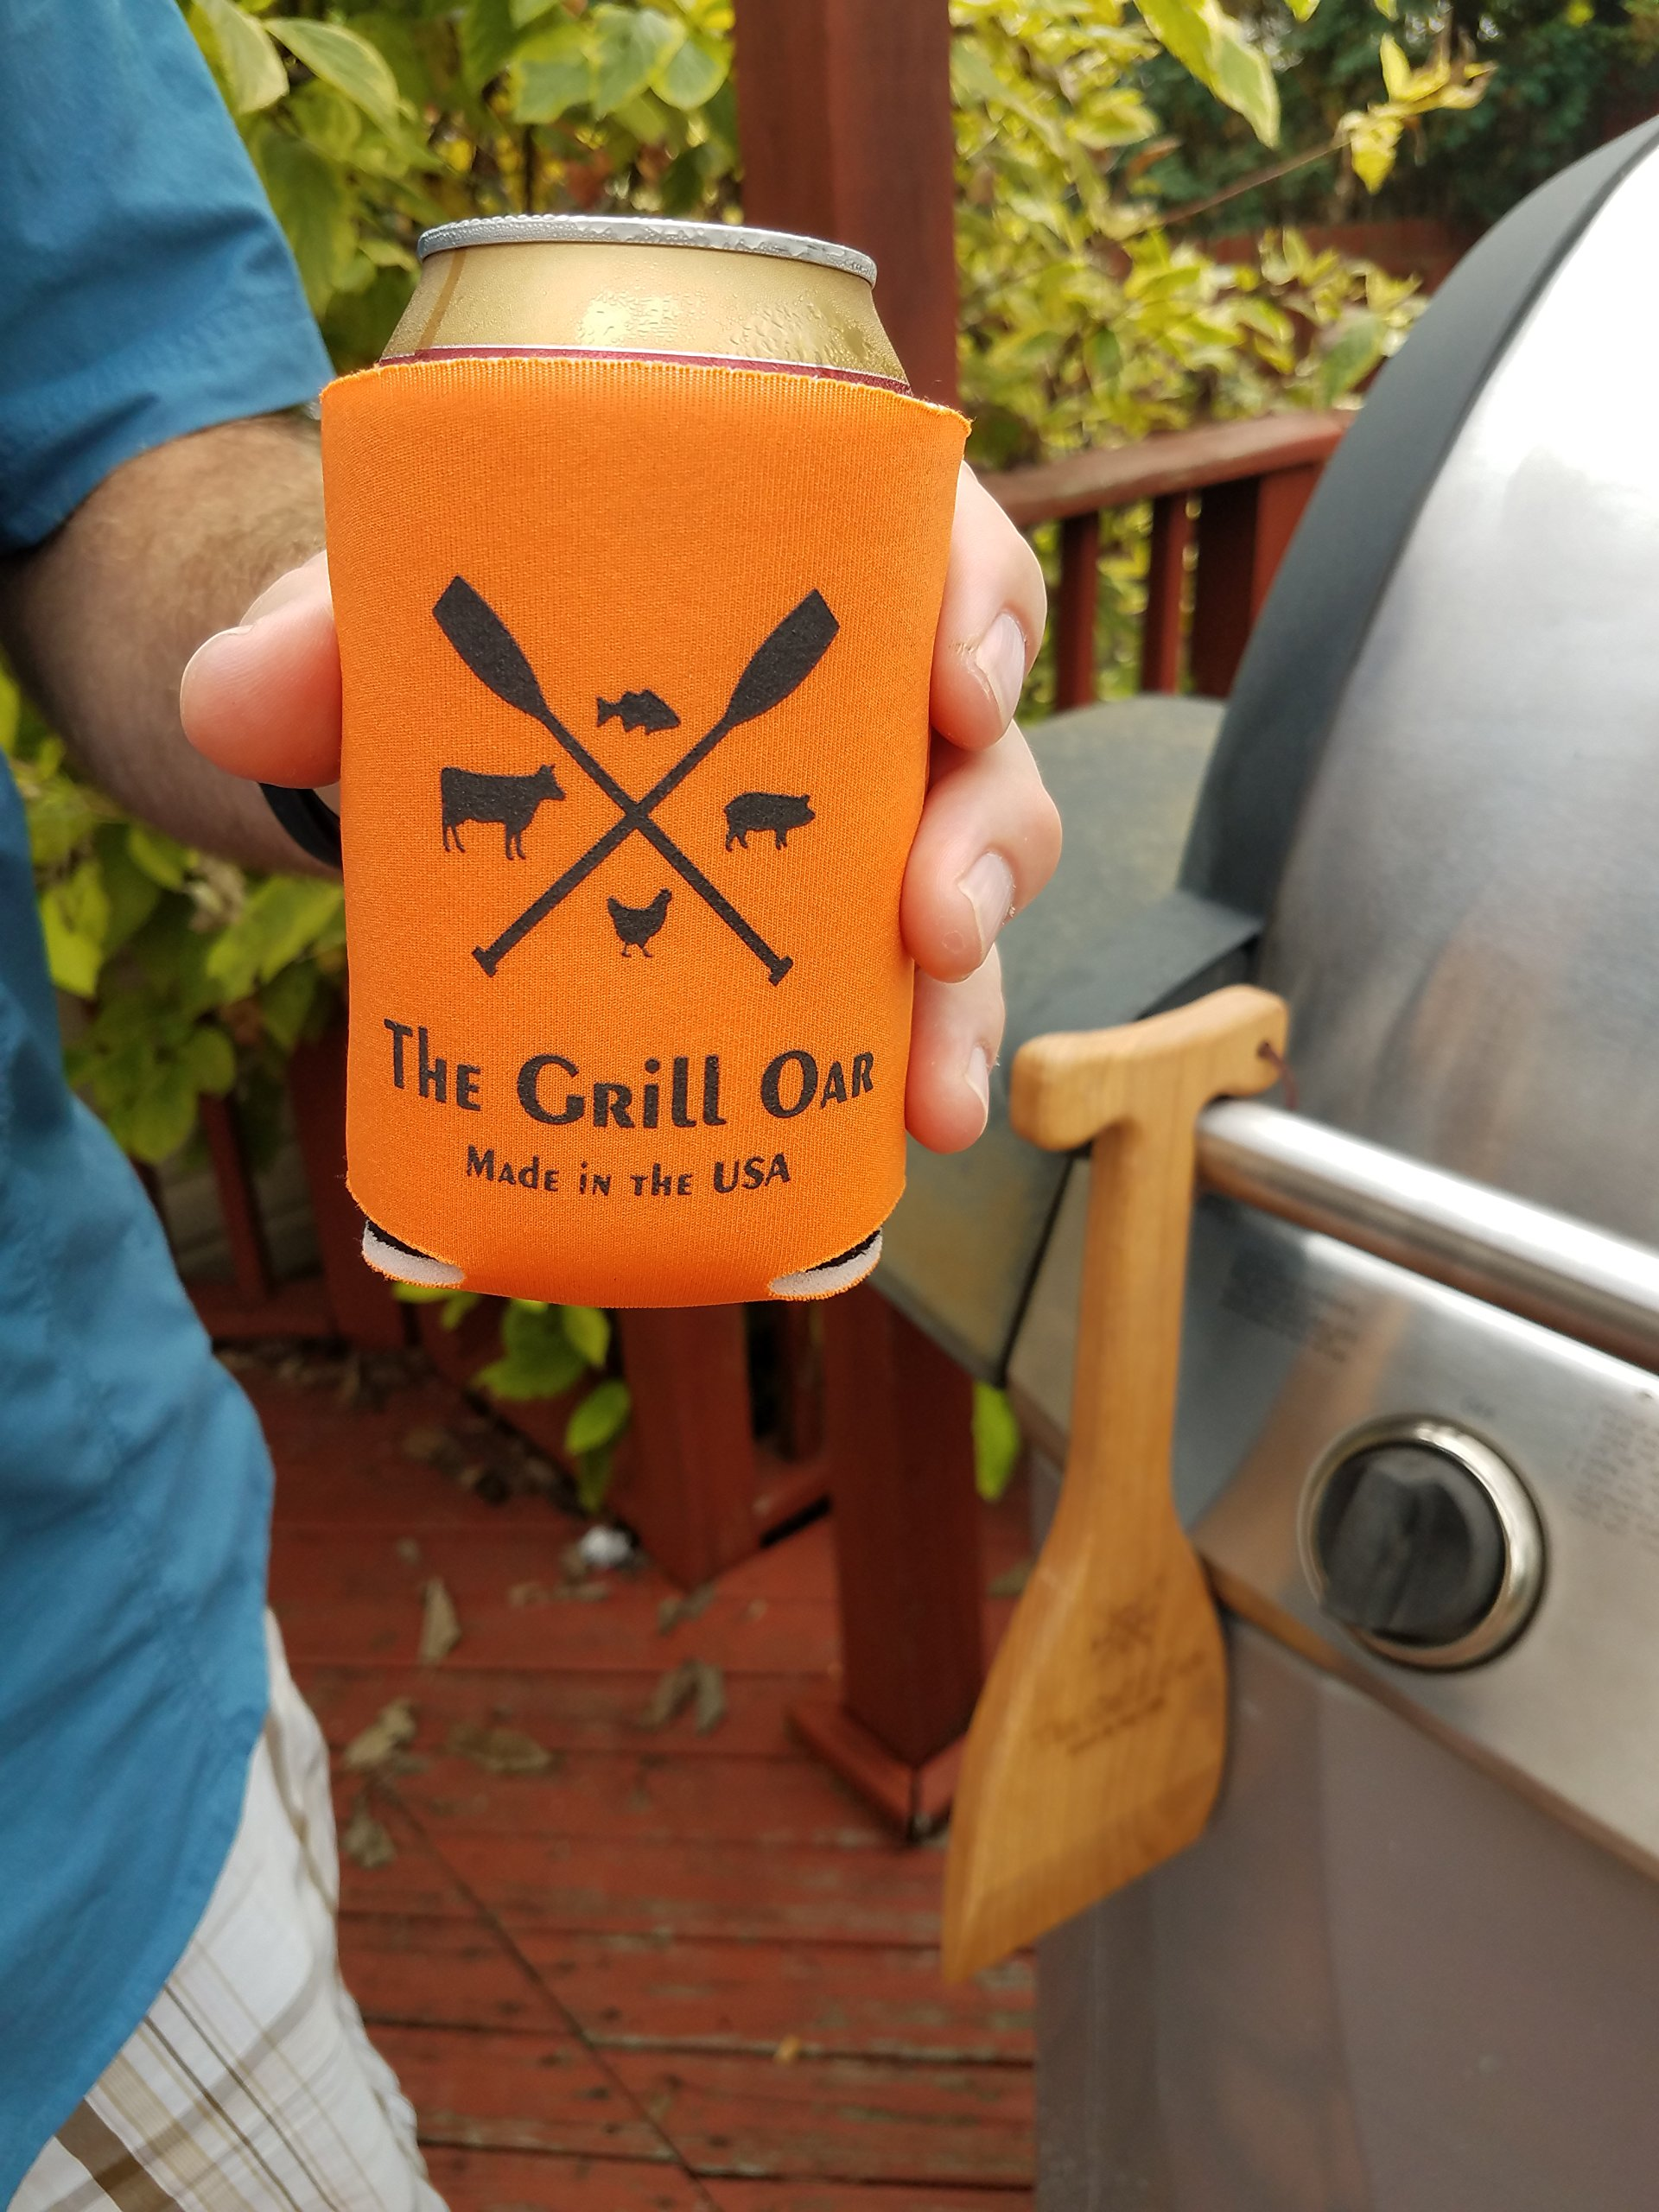 The Grill Oar - Wooden Grill Scraper and Cleaner, Premium Red Oak Wood, Cleans Top and Between Grates, Safe Replacement for Wire Bristle Brush, Made in The USA, Free Koozie Included! by Simply Better (Image #6)